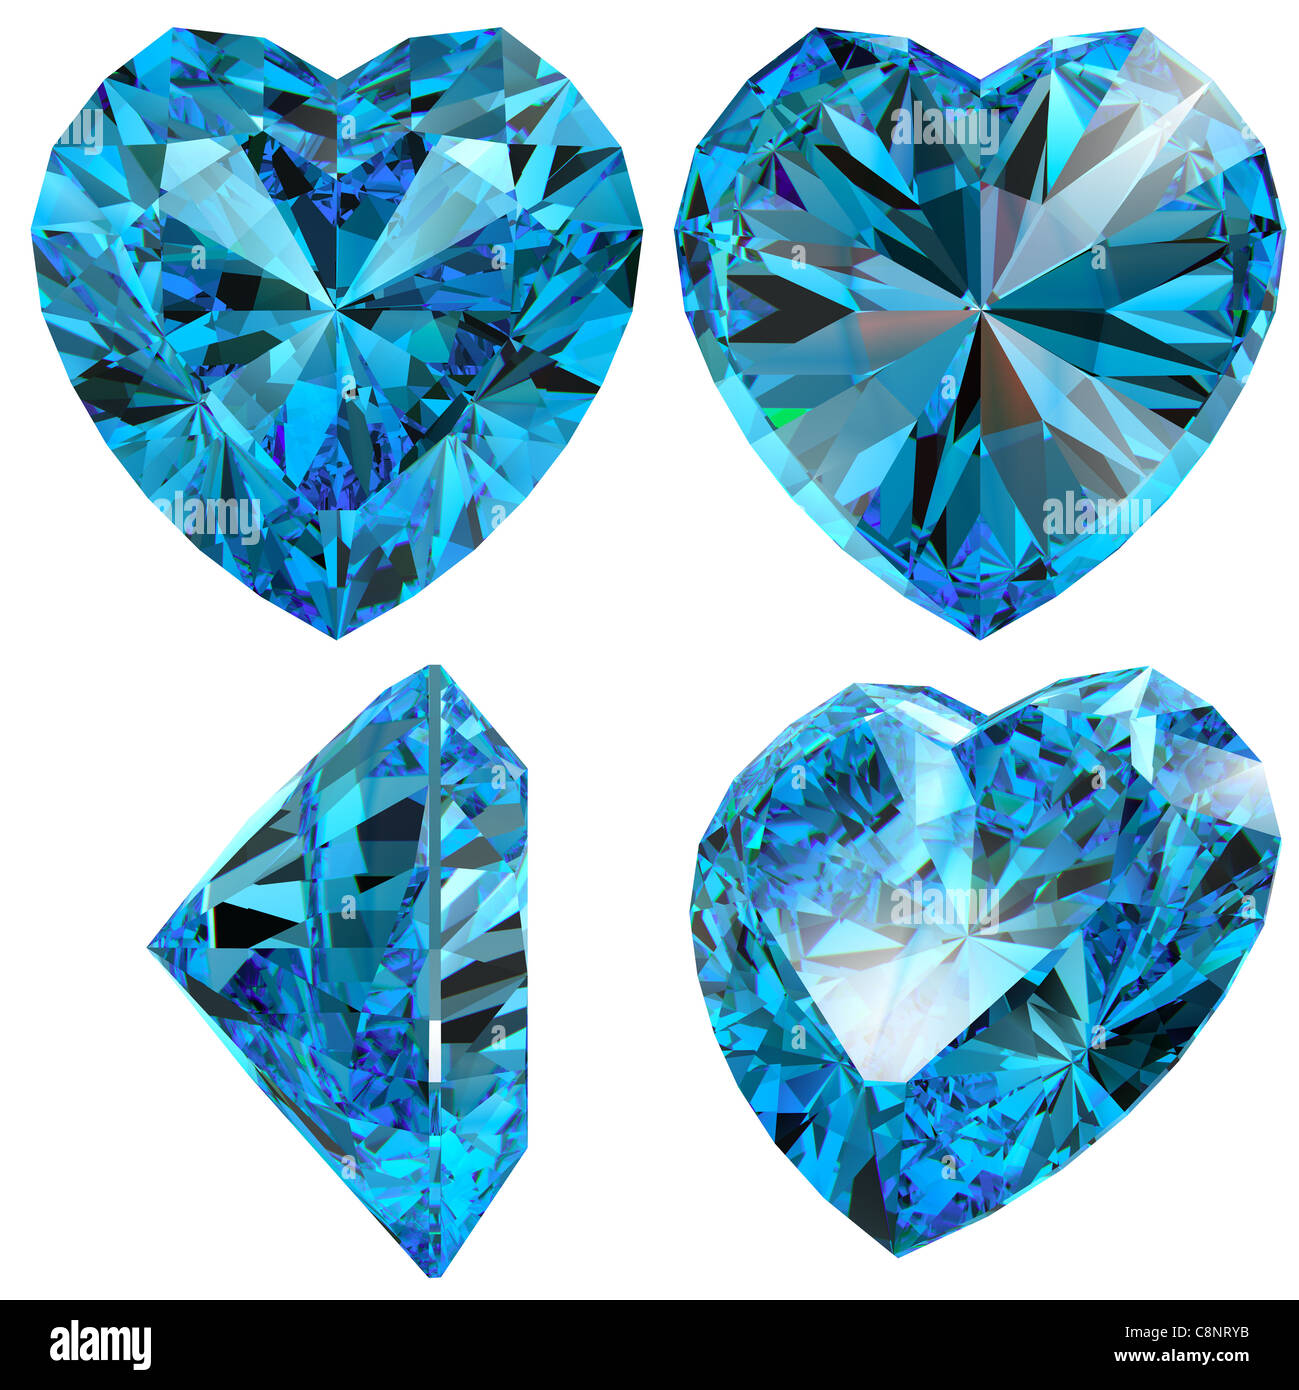 Blue Heart Diamond Cut Gem Isolated Different Views With